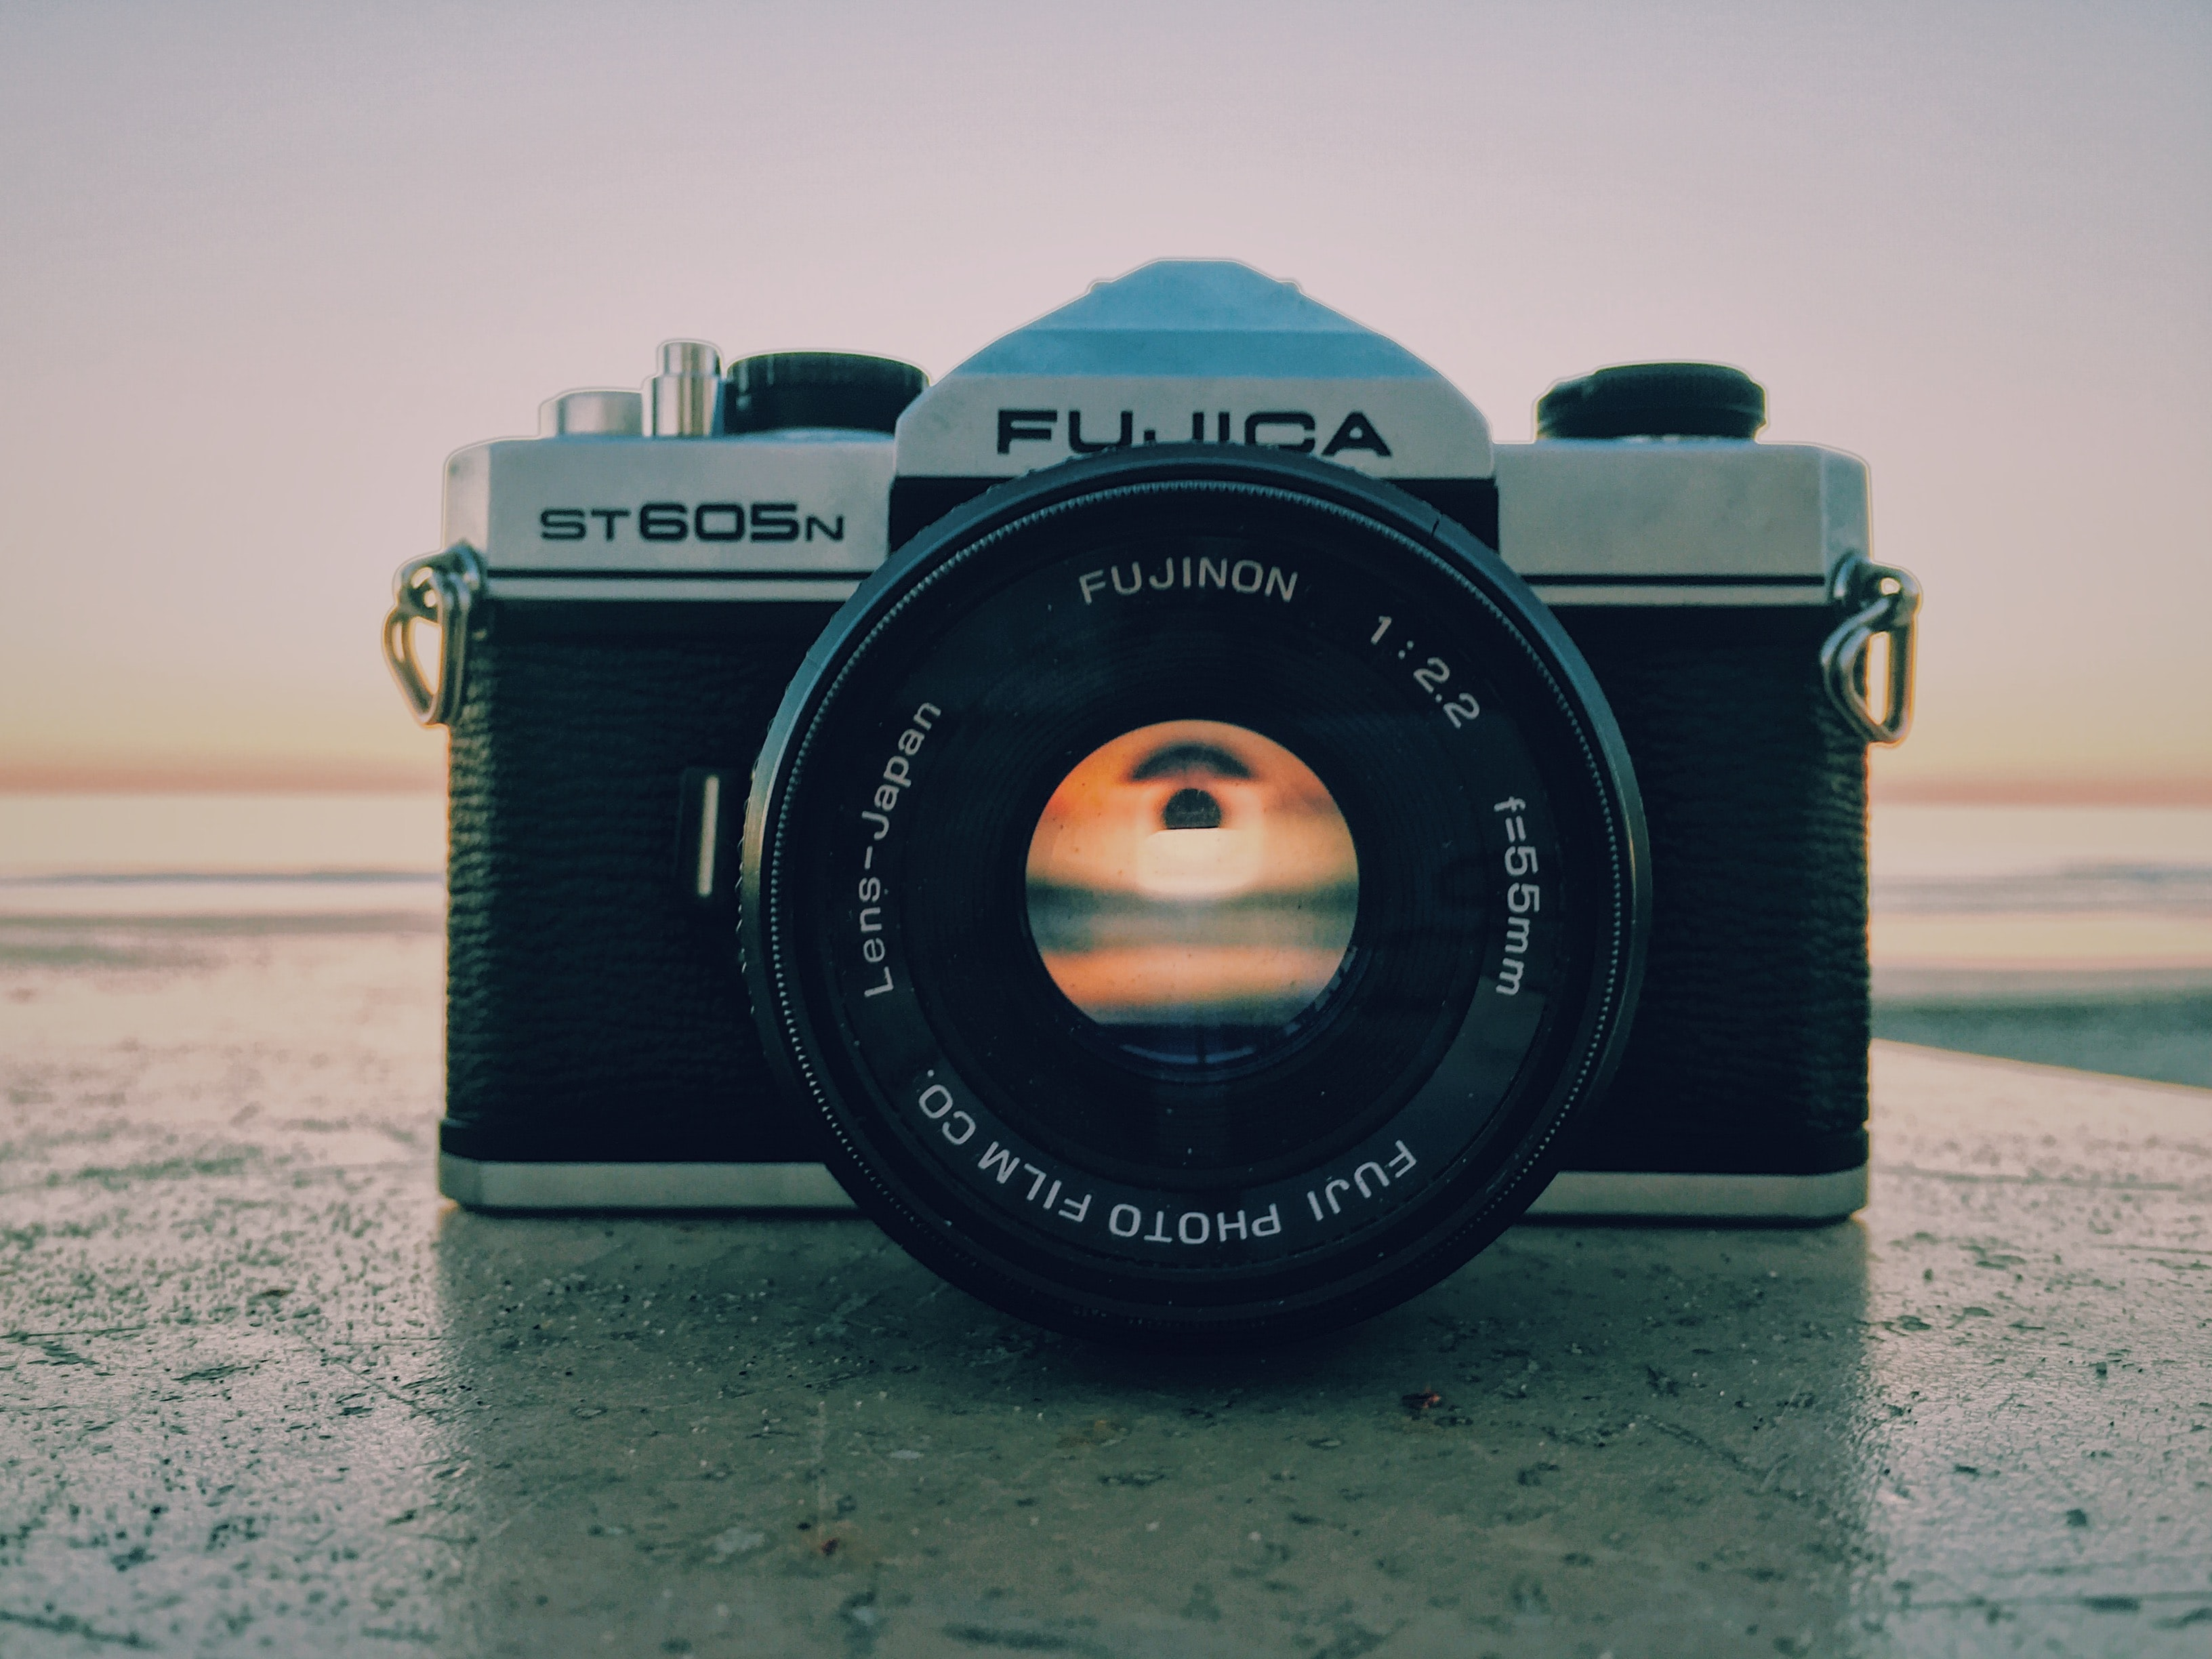 Fujica camera on a stone surface at dusk